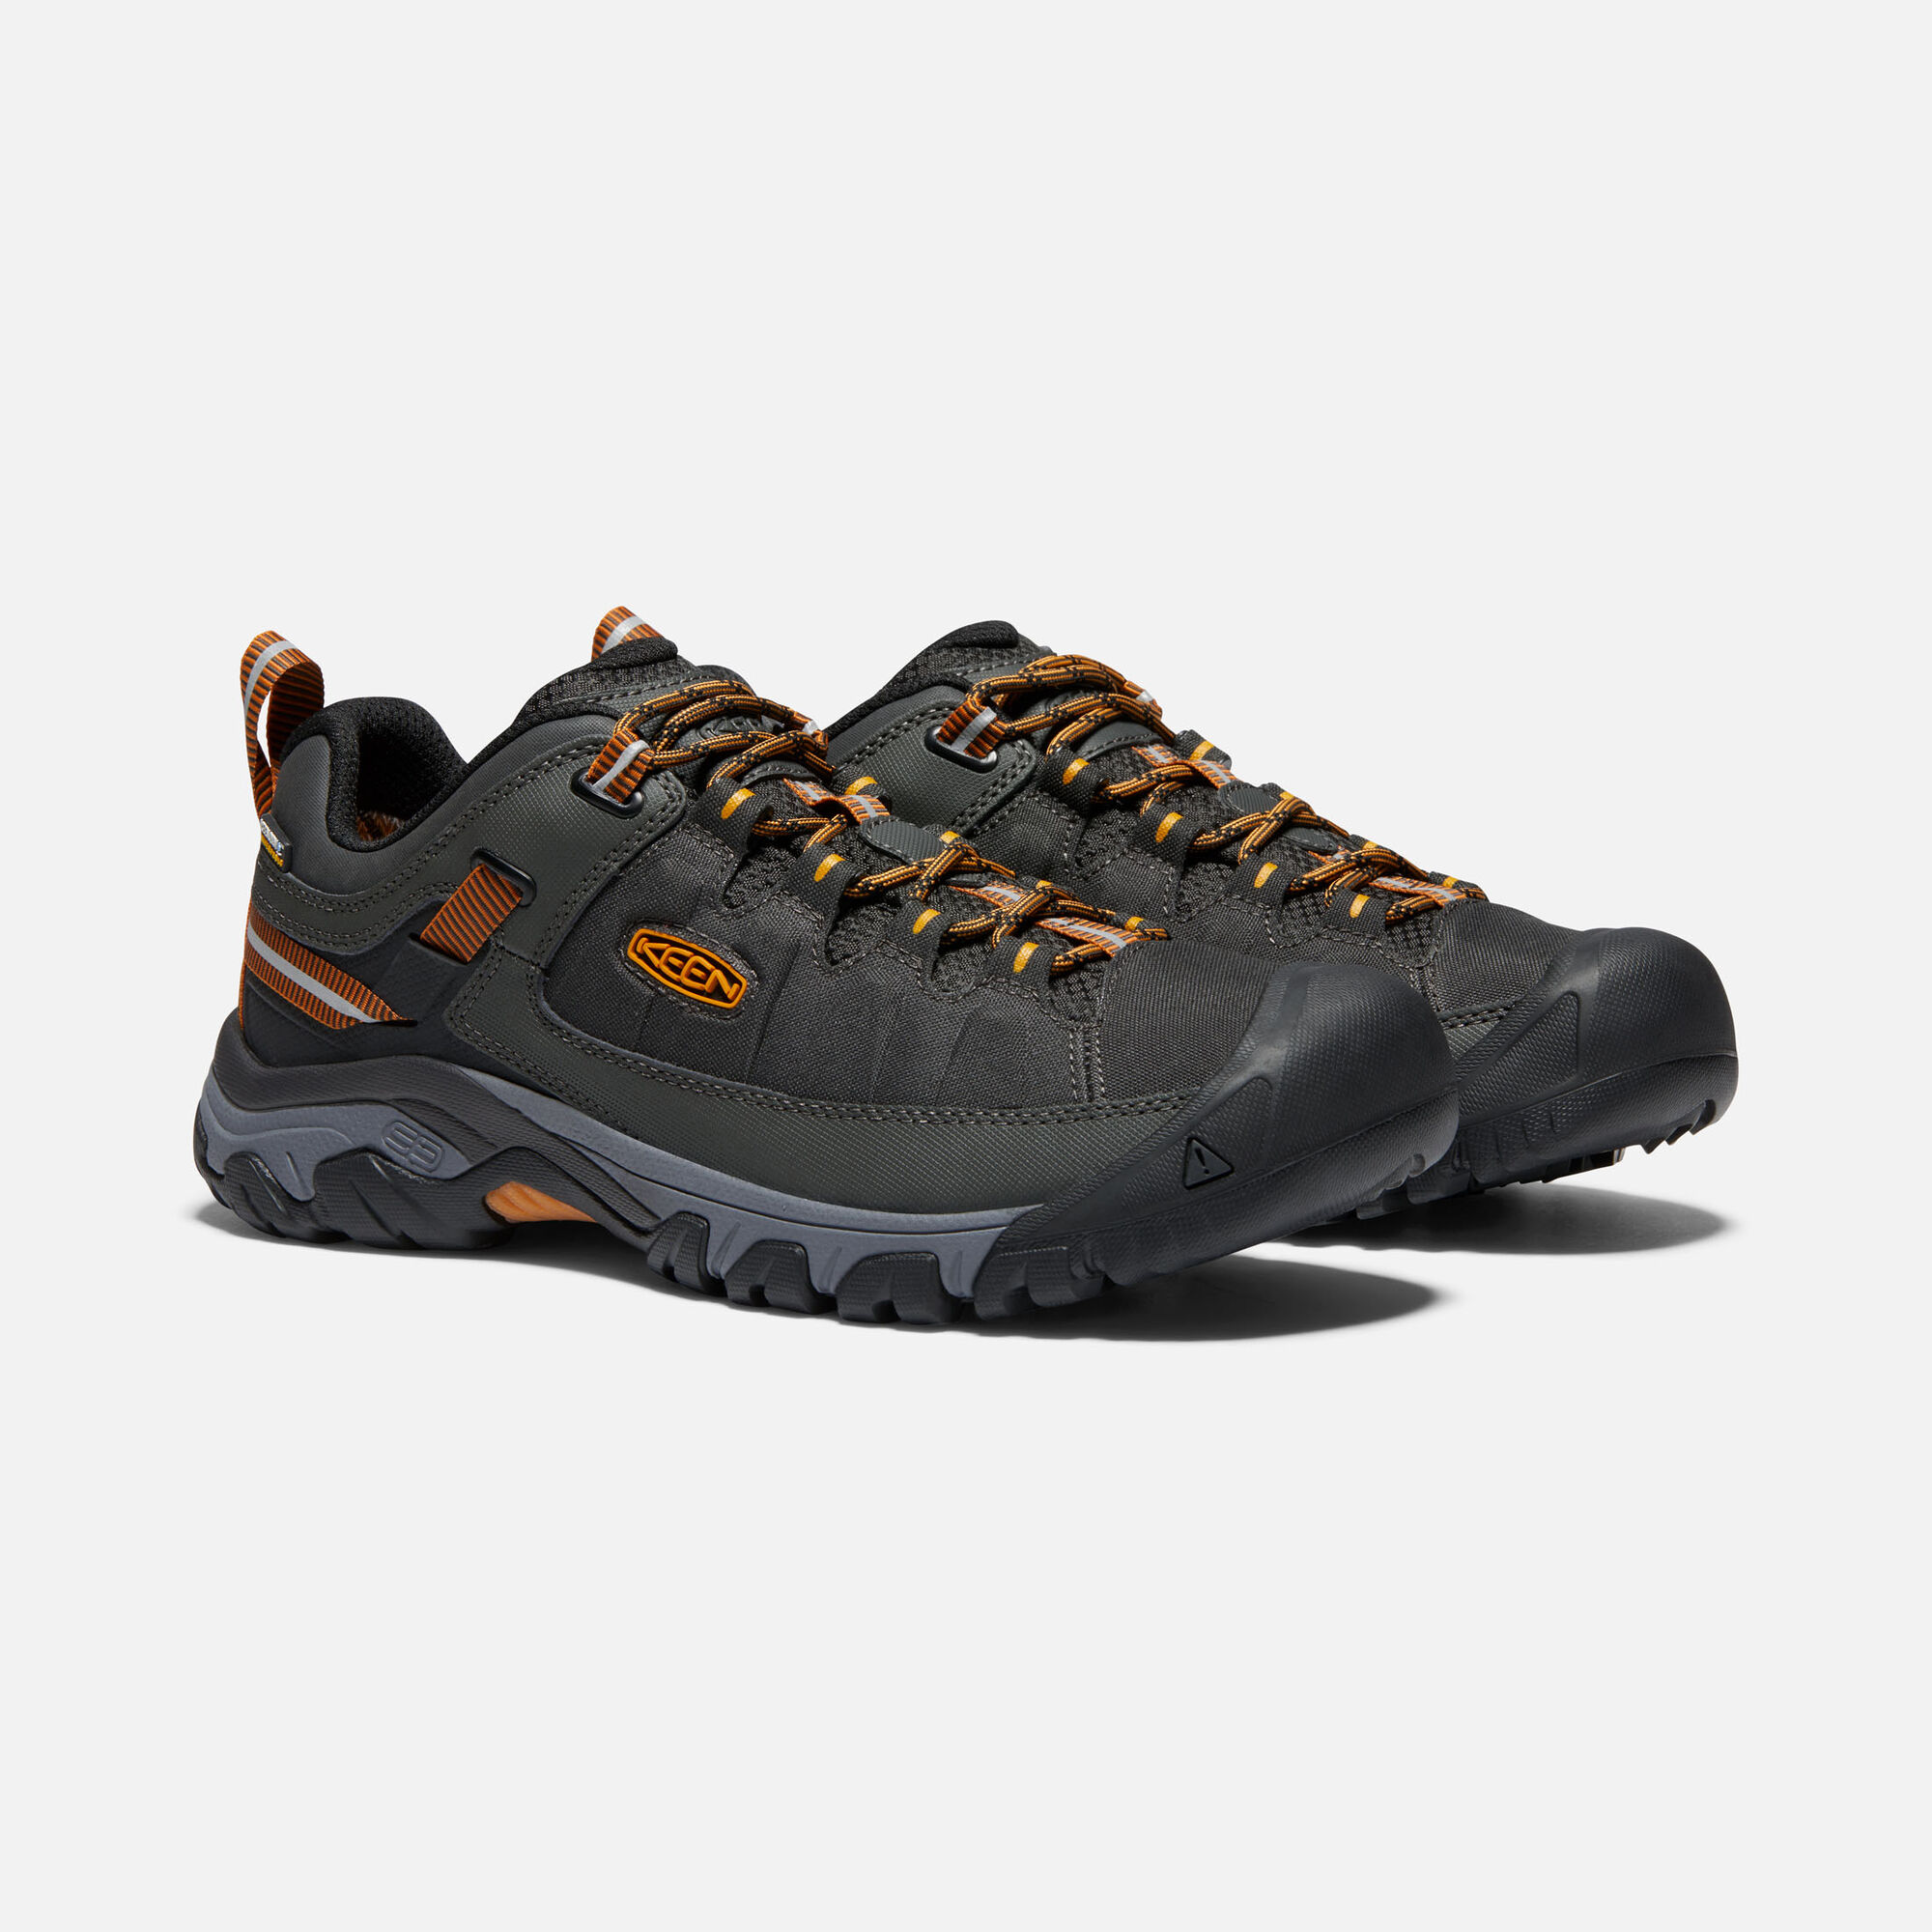 9956d9b70b4 Men's Targhee EXP Waterproof Hiking Shoes | KEEN Footwear